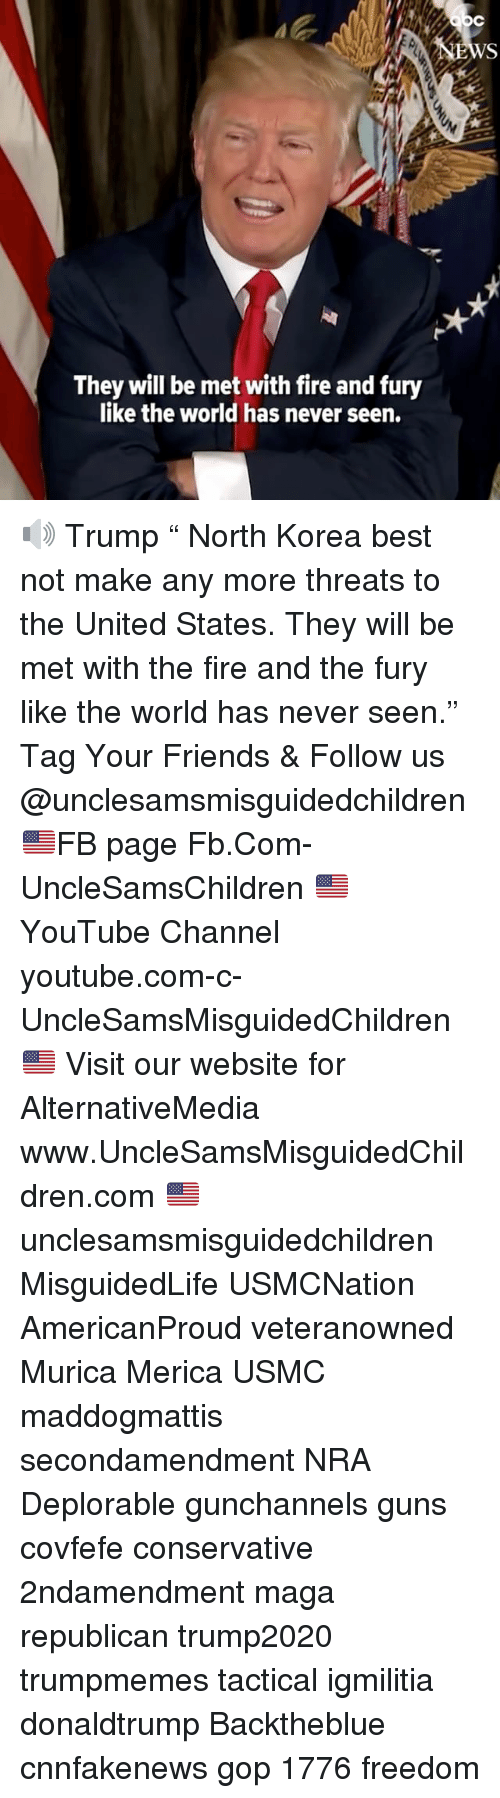 "Fire, Friends, and Guns: They will be met with fire and fury  like the world has never seen. 🔊 Trump "" North Korea best not make any more threats to the United States. They will be met with the fire and the fury like the world has never seen."" Tag Your Friends & Follow us @unclesamsmisguidedchildren 🇺🇸FB page Fb.Com-UncleSamsChildren 🇺🇸YouTube Channel youtube.com-c-UncleSamsMisguidedChildren 🇺🇸 Visit our website for AlternativeMedia www.UncleSamsMisguidedChildren.com 🇺🇸 unclesamsmisguidedchildren MisguidedLife USMCNation AmericanProud veteranowned Murica Merica USMC maddogmattis secondamendment NRA Deplorable gunchannels guns covfefe conservative 2ndamendment maga republican trump2020 trumpmemes tactical igmilitia donaldtrump Backtheblue cnnfakenews gop 1776 freedom"